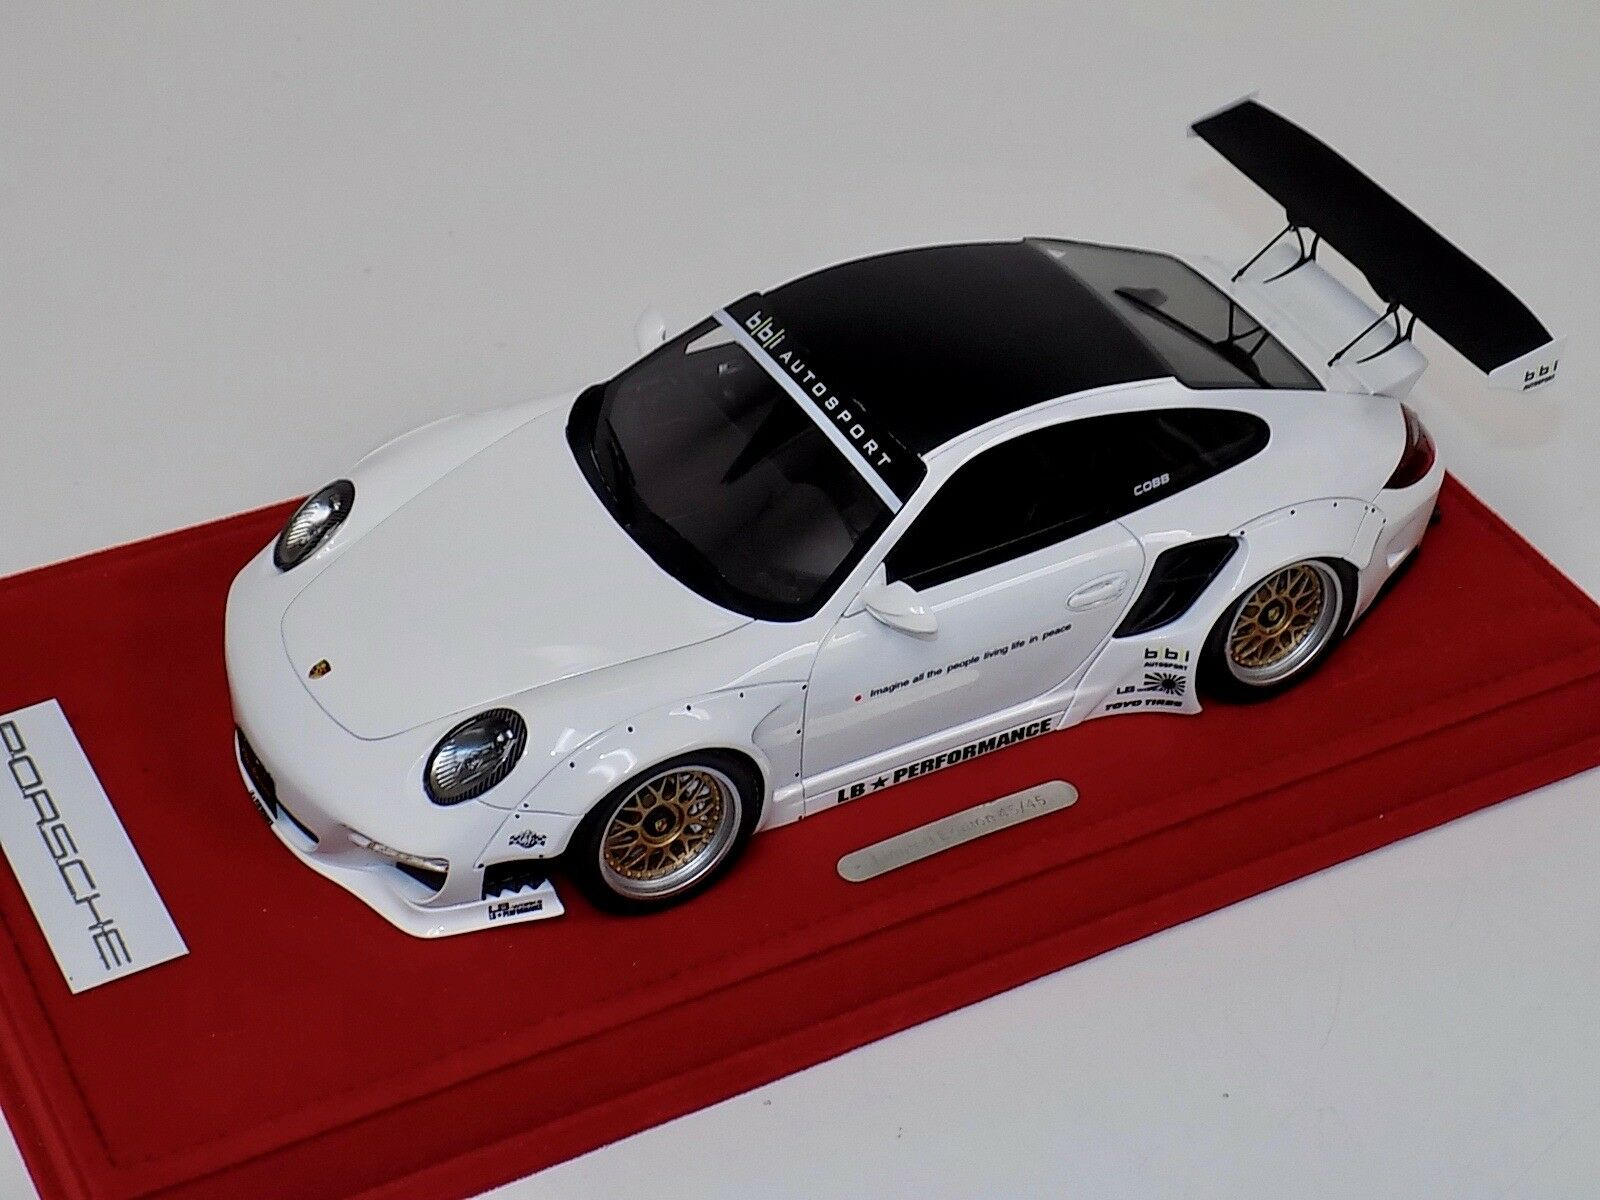 1/18 AB Models Porsche 911 Liberty walk LB Performance bianca Decals 04A